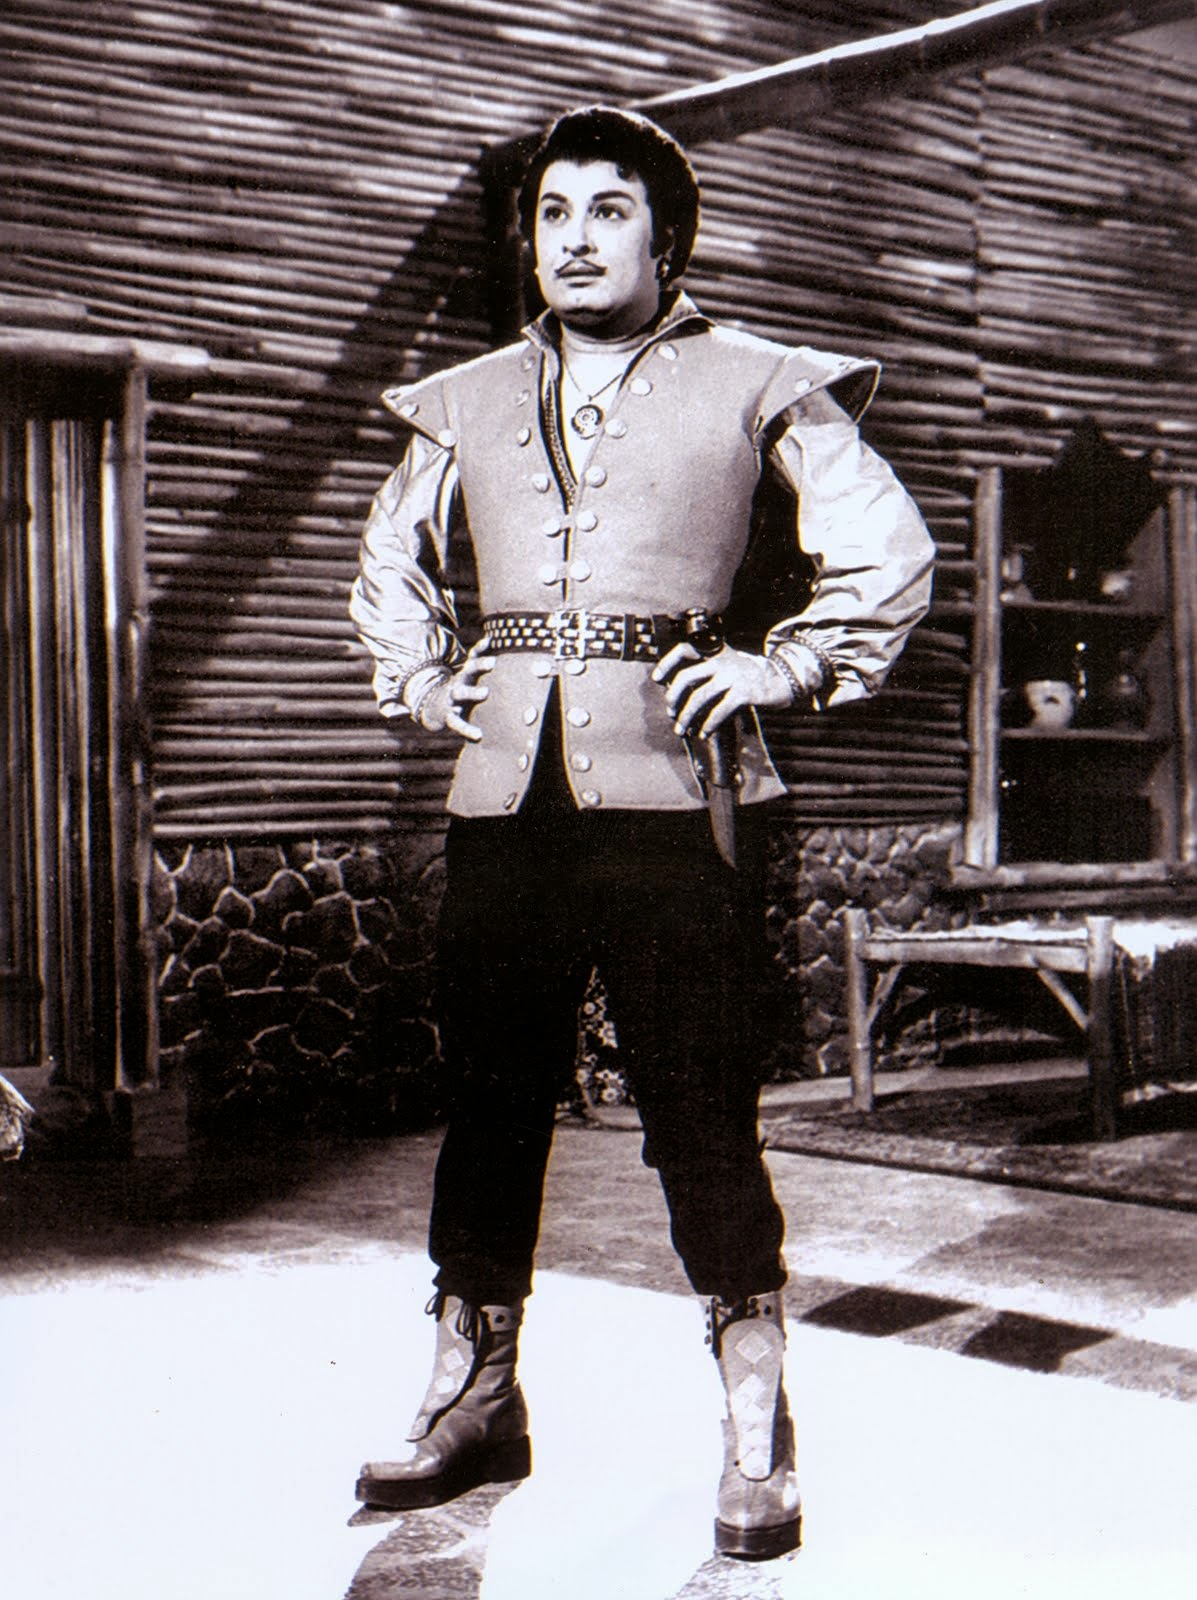 MGR in 'Aayirathil Oruvan' Movie (1965)